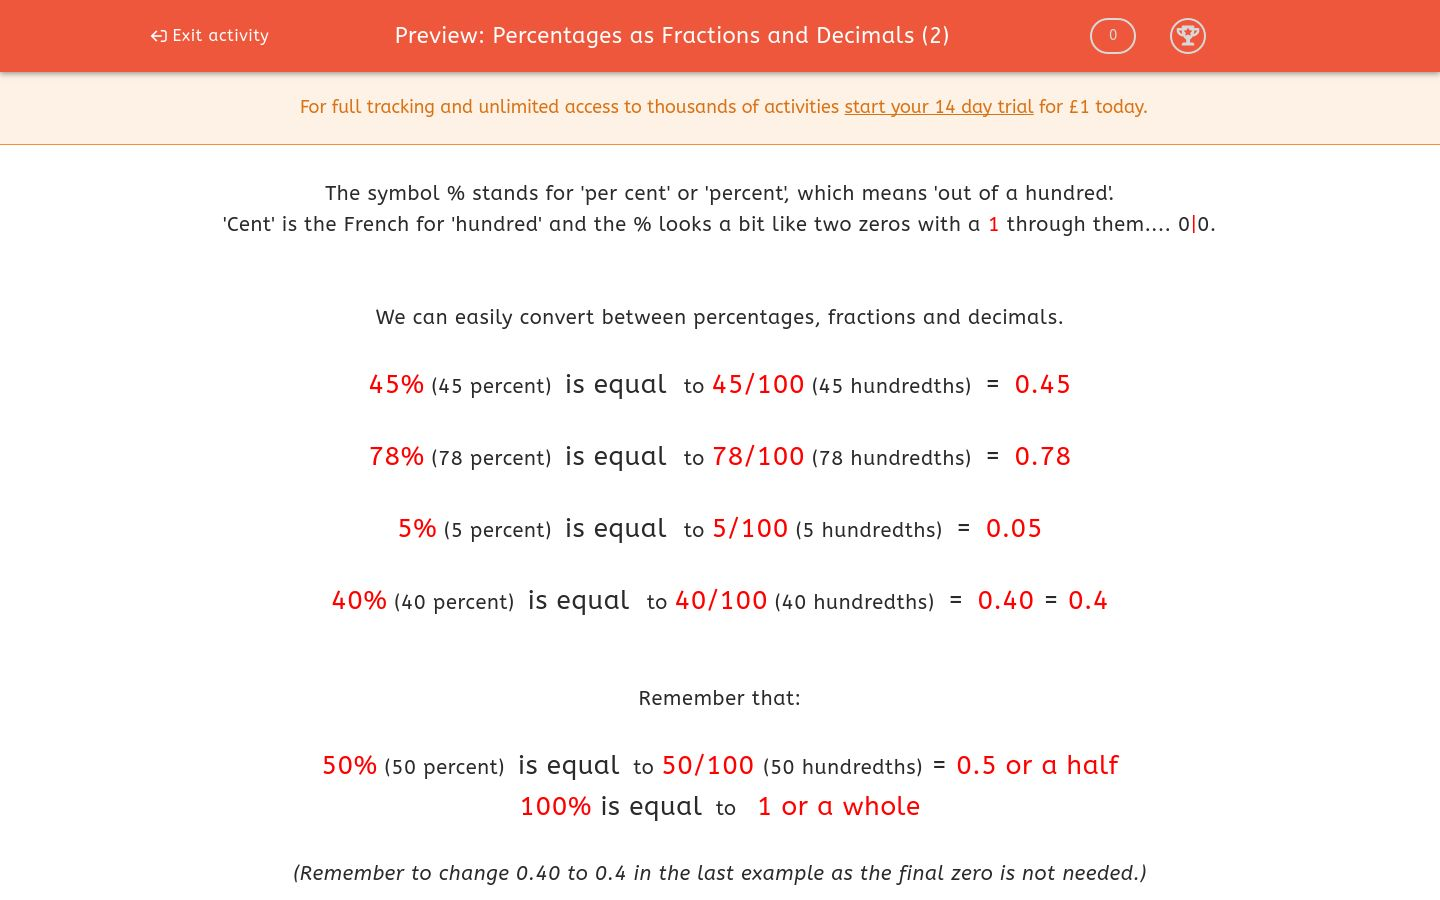 'Percentages as Fractions and Decimals (2)' worksheet